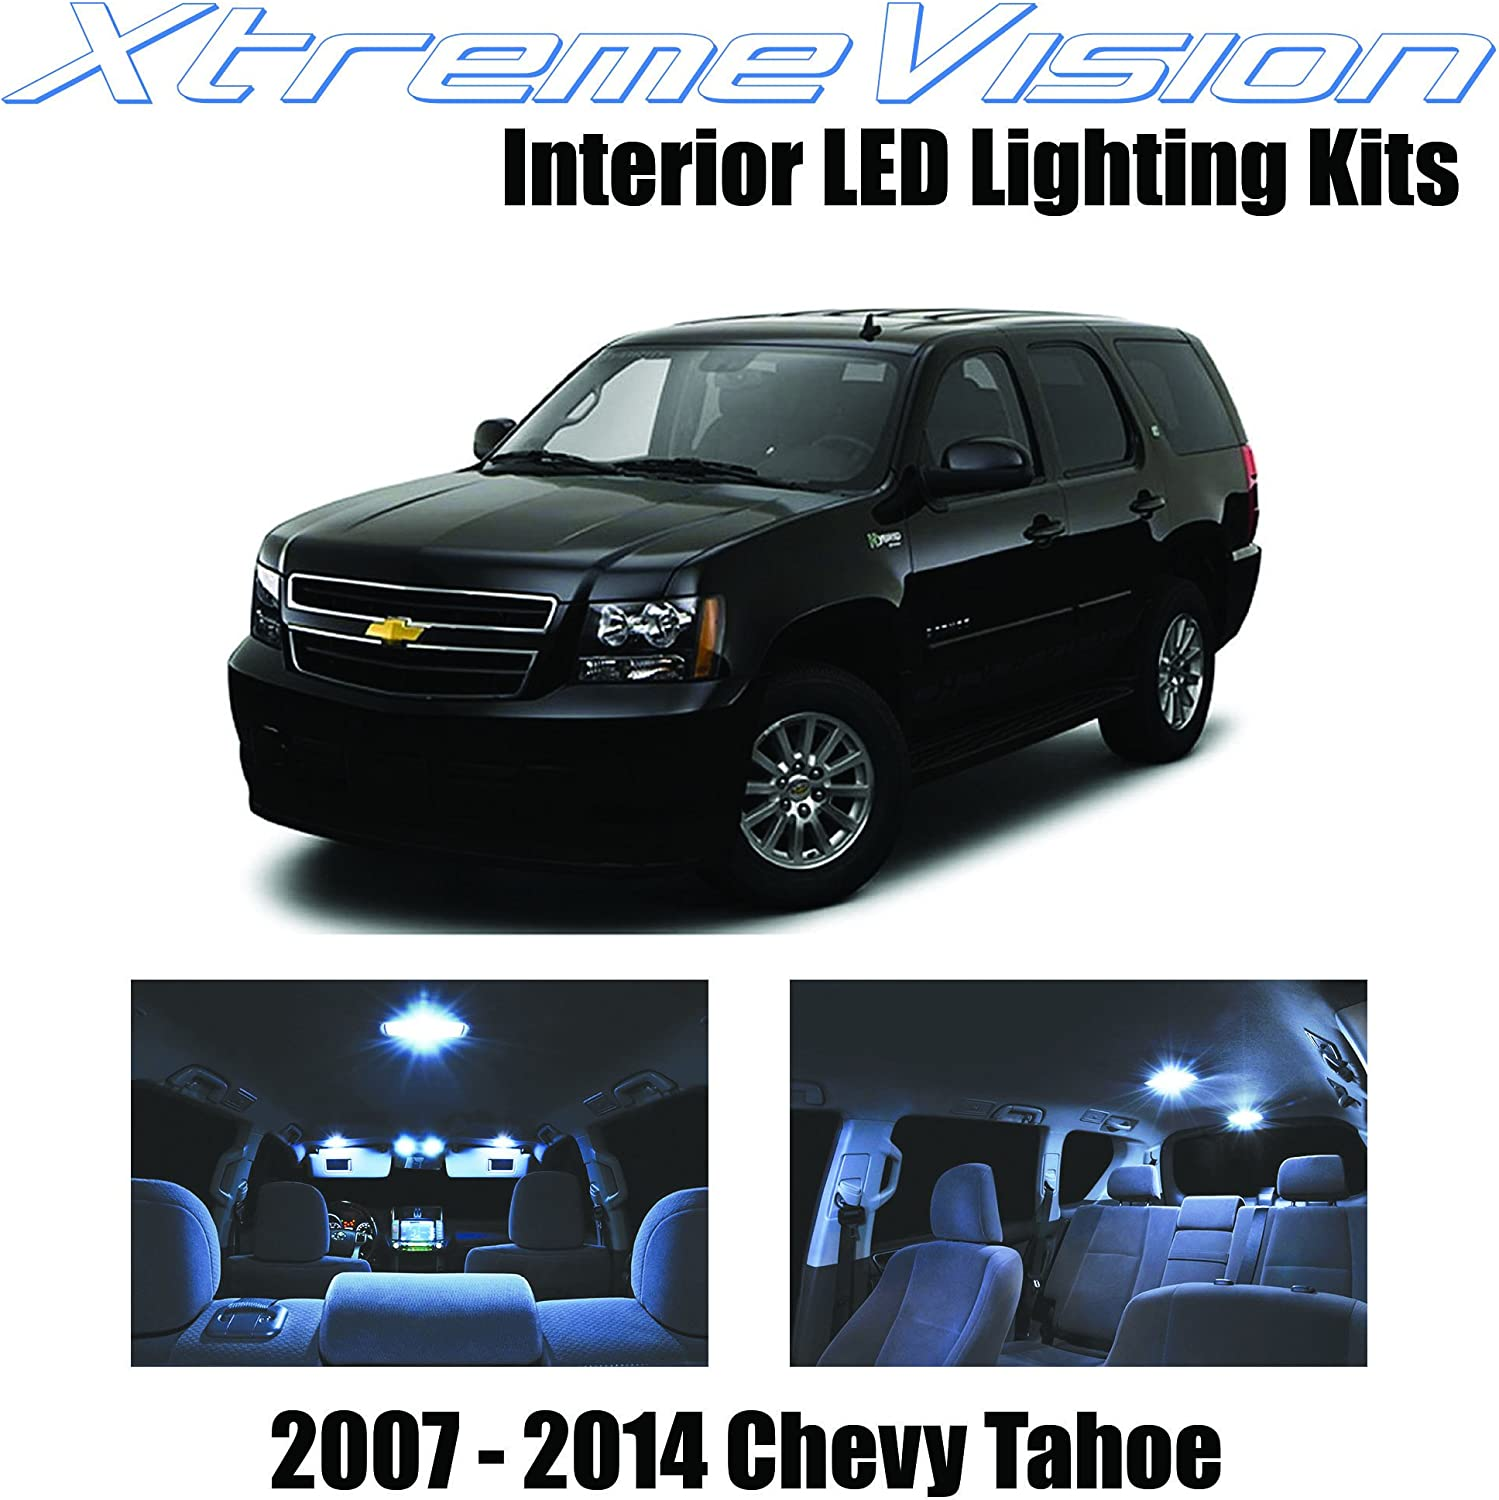 XtremeVision Interior LED for Chevrolet Tahoe 2007-2014 (12 Pieces) Cool White Interior LED Kit + Installation Tool